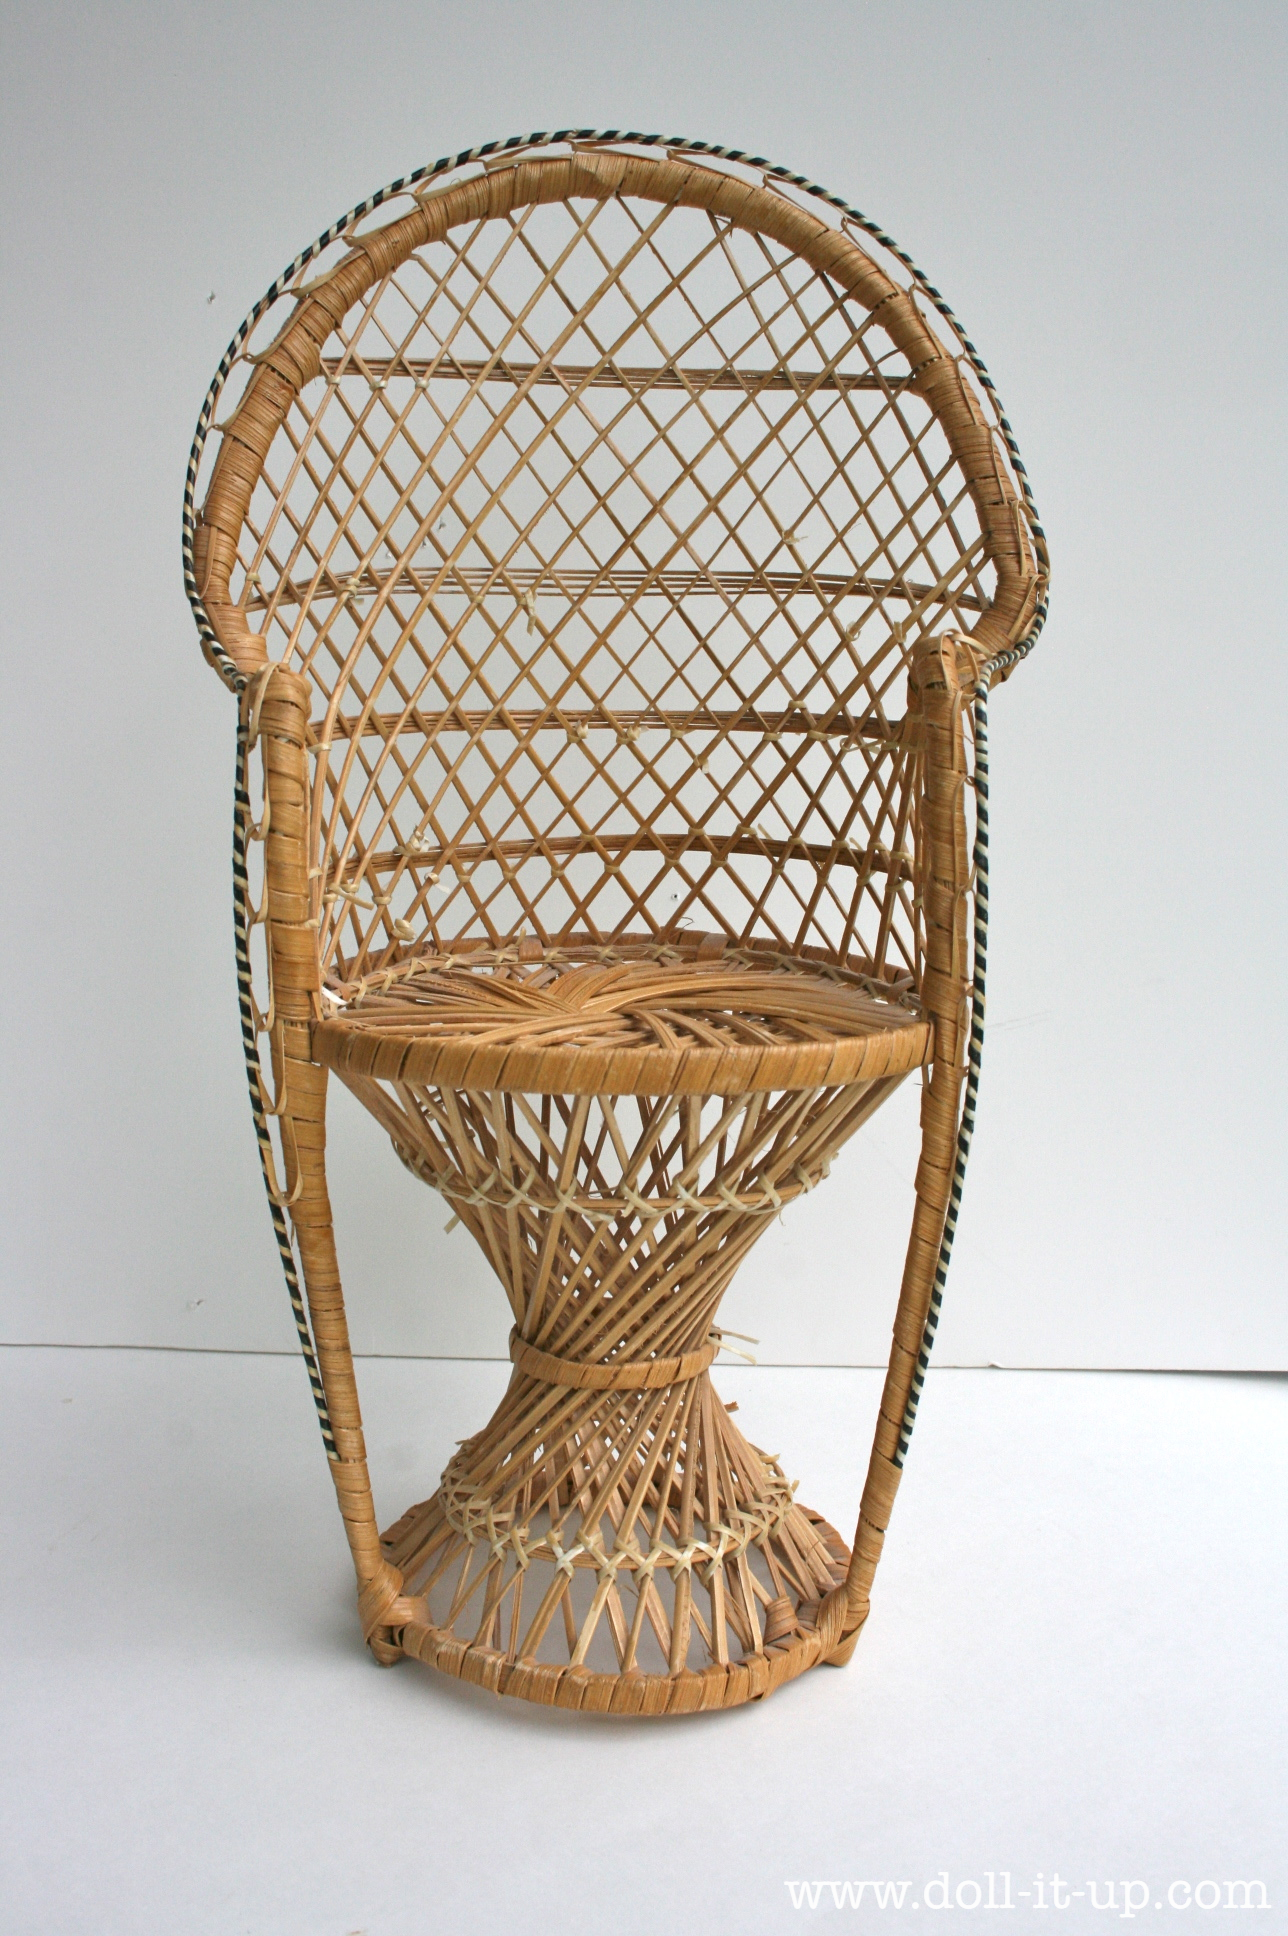 Repurposed Up Cycled One Wicker Chair Into A Wicker Furniture Set